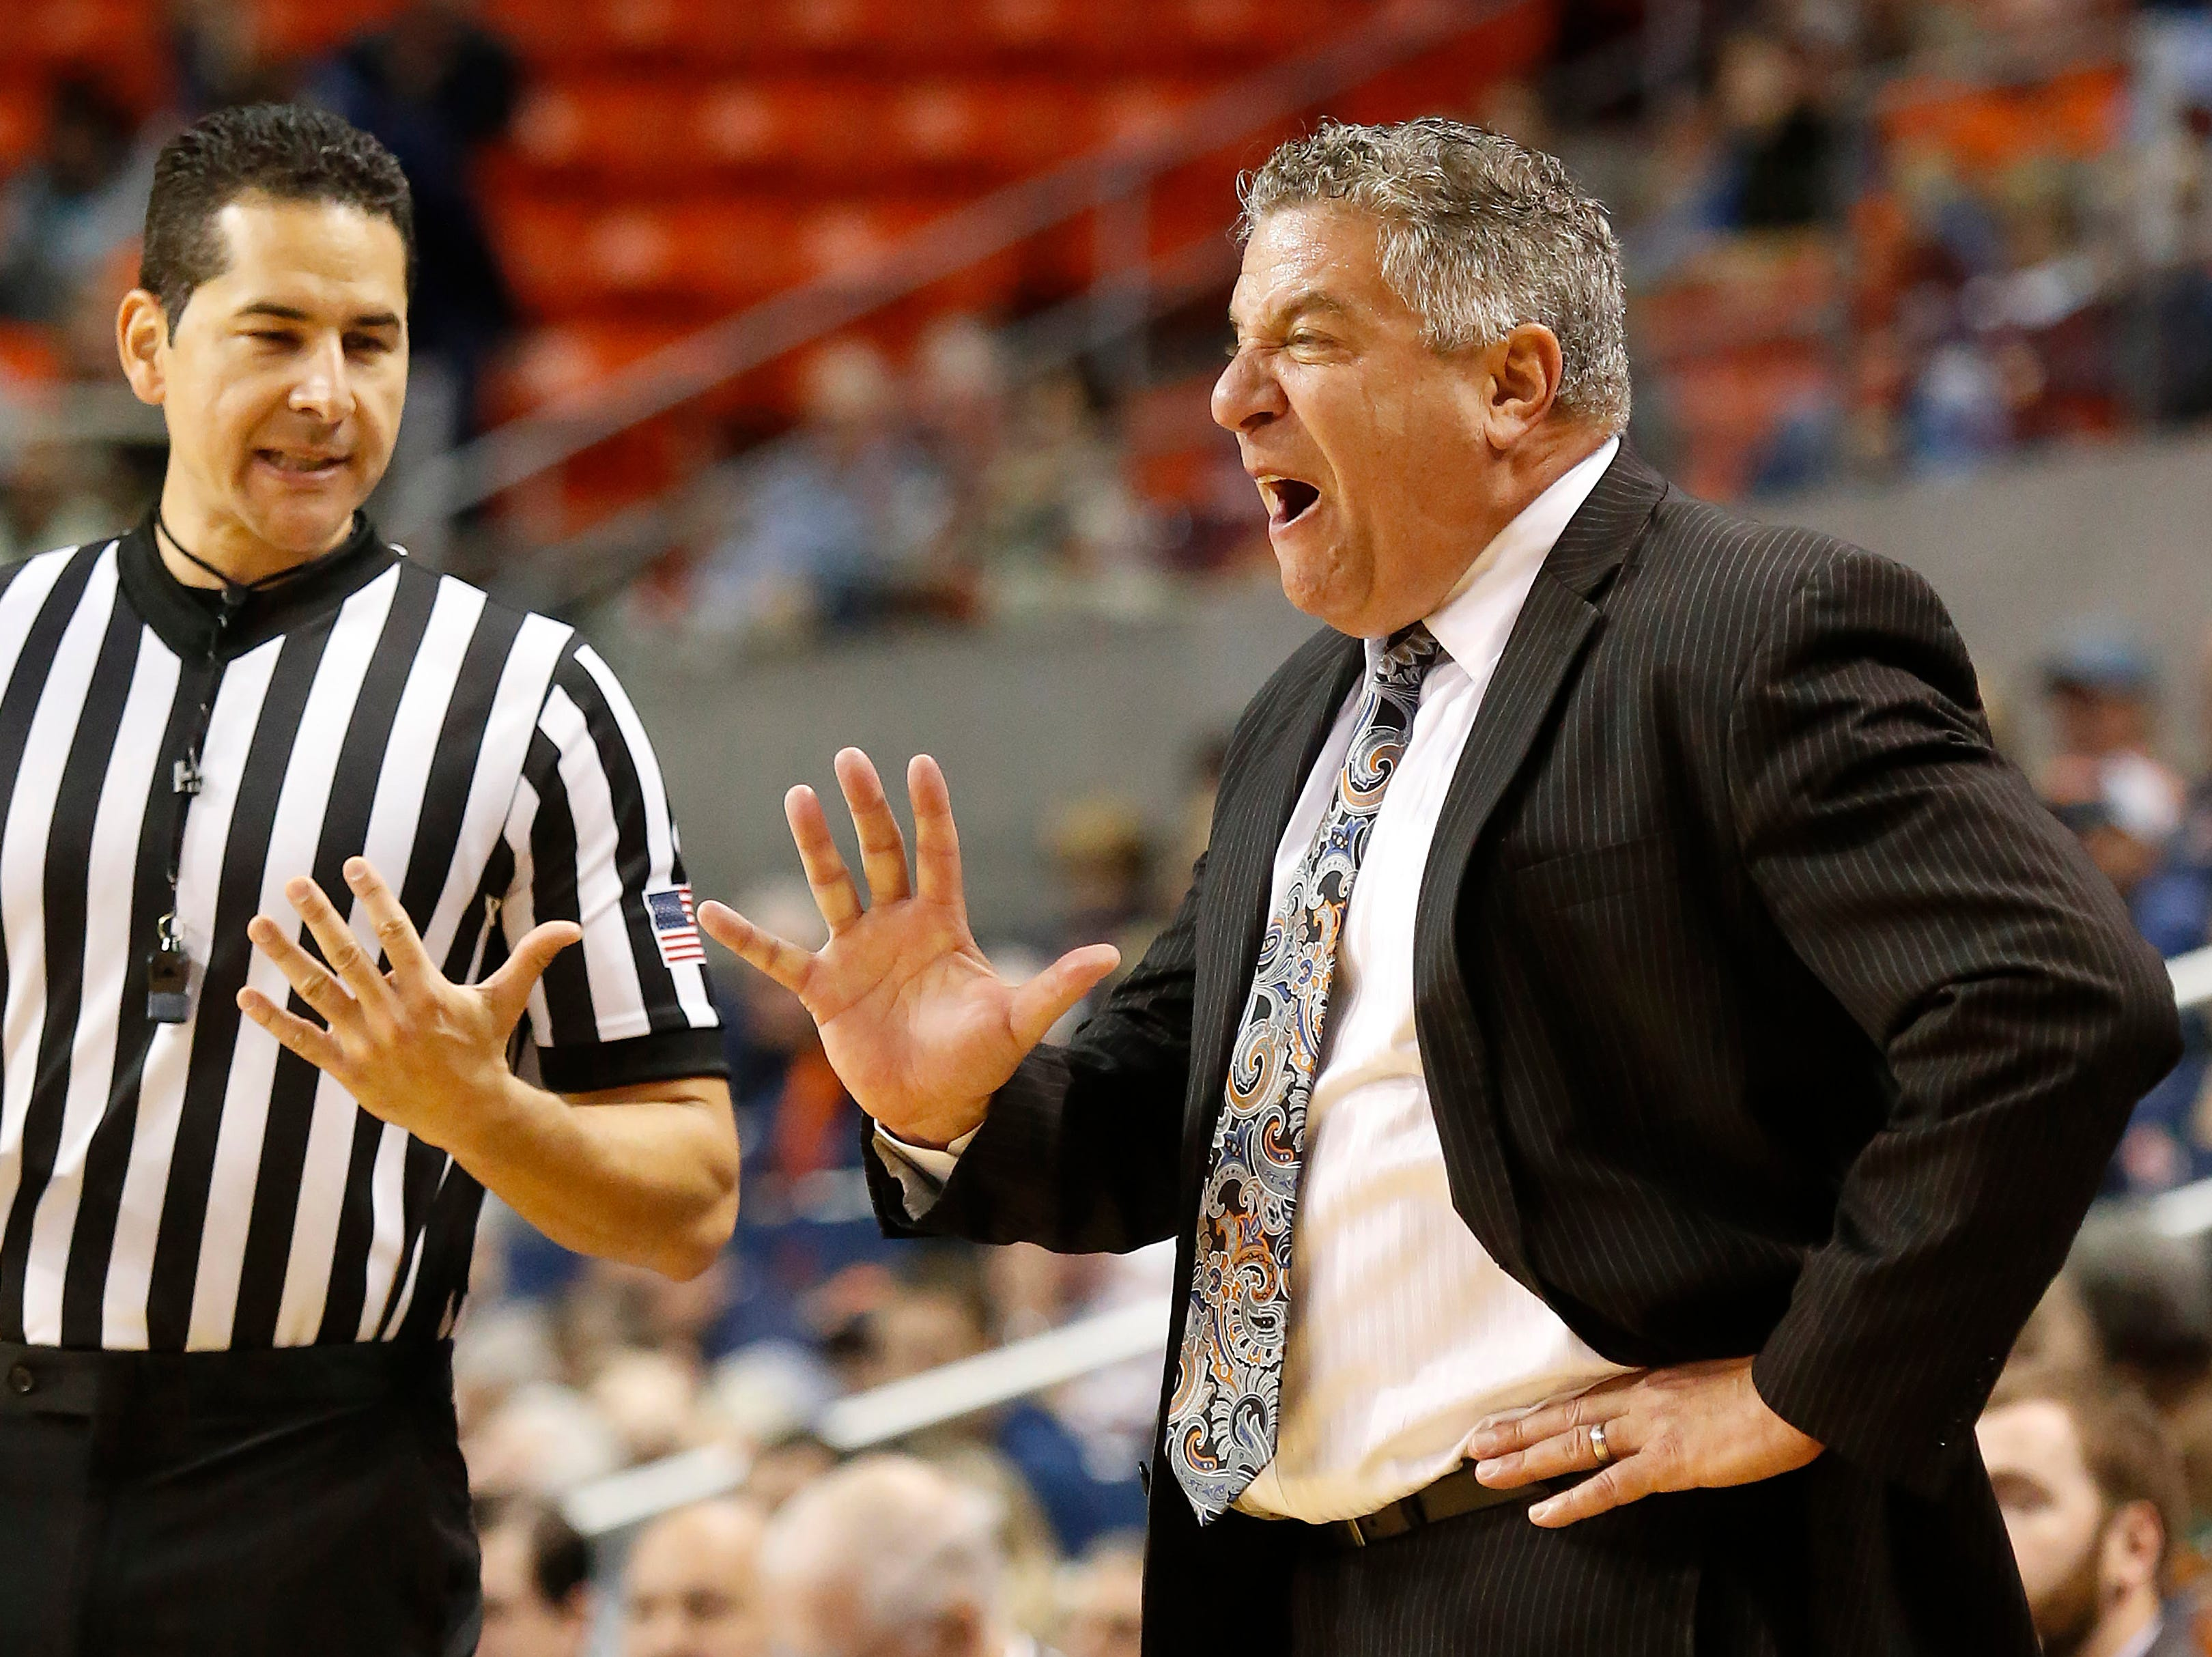 Dec 4, 2018; Auburn, AL, USA; Auburn Tigers head coach Bruce Pearl talks to an official after a foul against the UNC-Asheville Bulldogs during the second half at Auburn Arena. Mandatory Credit: John Reed-USA TODAY Sports